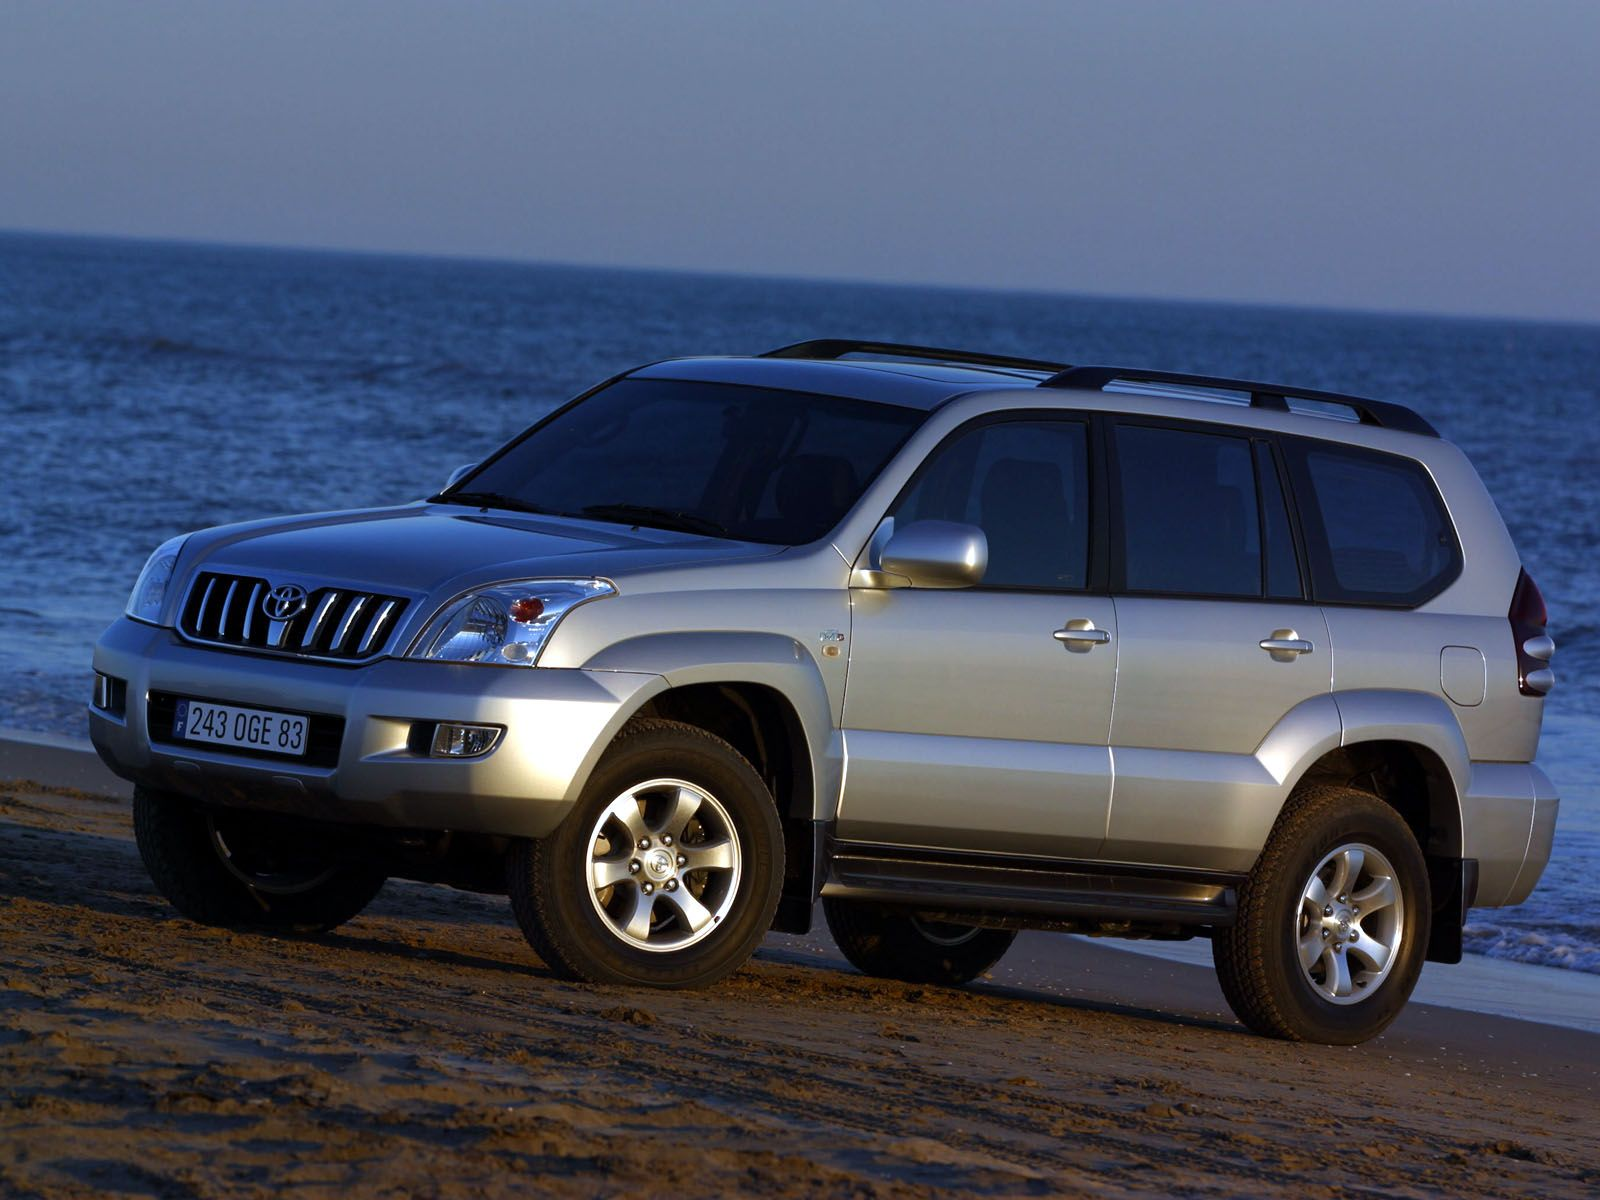 Toyota Land Cruiser 120 Photos Photogallery With 9 Pics